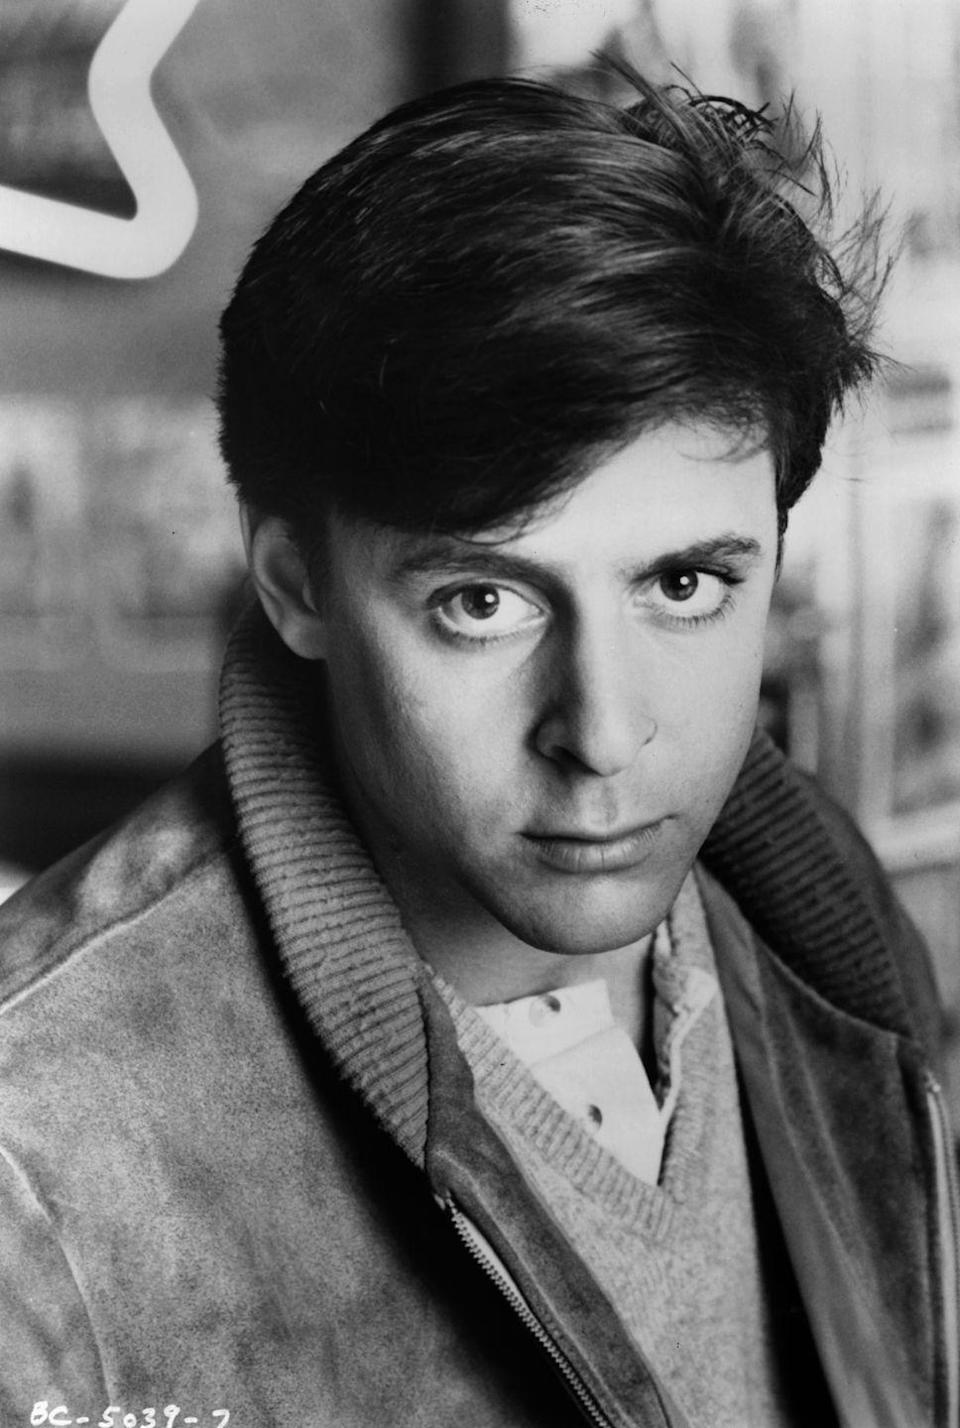 """<p>This brooding guy launched his career in the classic '80s hit <em>The Breakfast Club</em> as John Bender, a.k.a. the bad boy of the bunch. Soon after, he costarred in <em>St. Elmo's Fire</em><span class=""""redactor-invisible-space""""> (1985) alongside fellow Brat Pack members Emilio Estevez, Ally Sheedy, and Andrew McCarthy.</span></p>"""